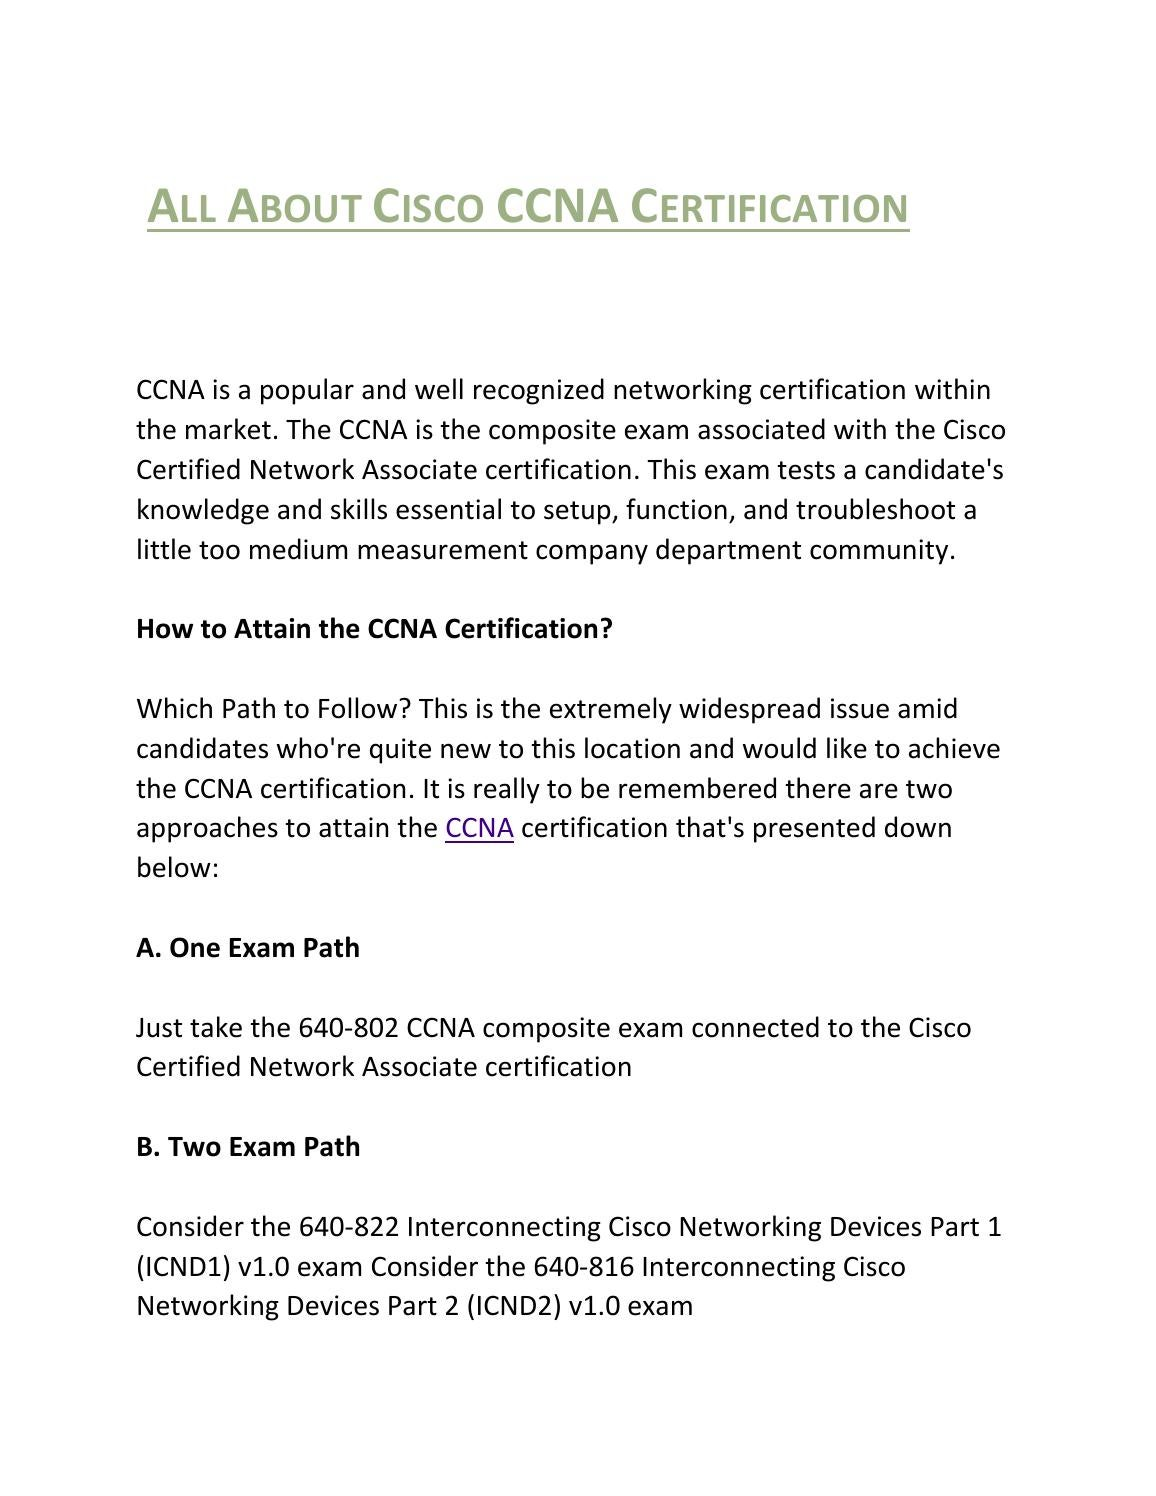 All About Cisco Ccna Certification By Harry John Issuu